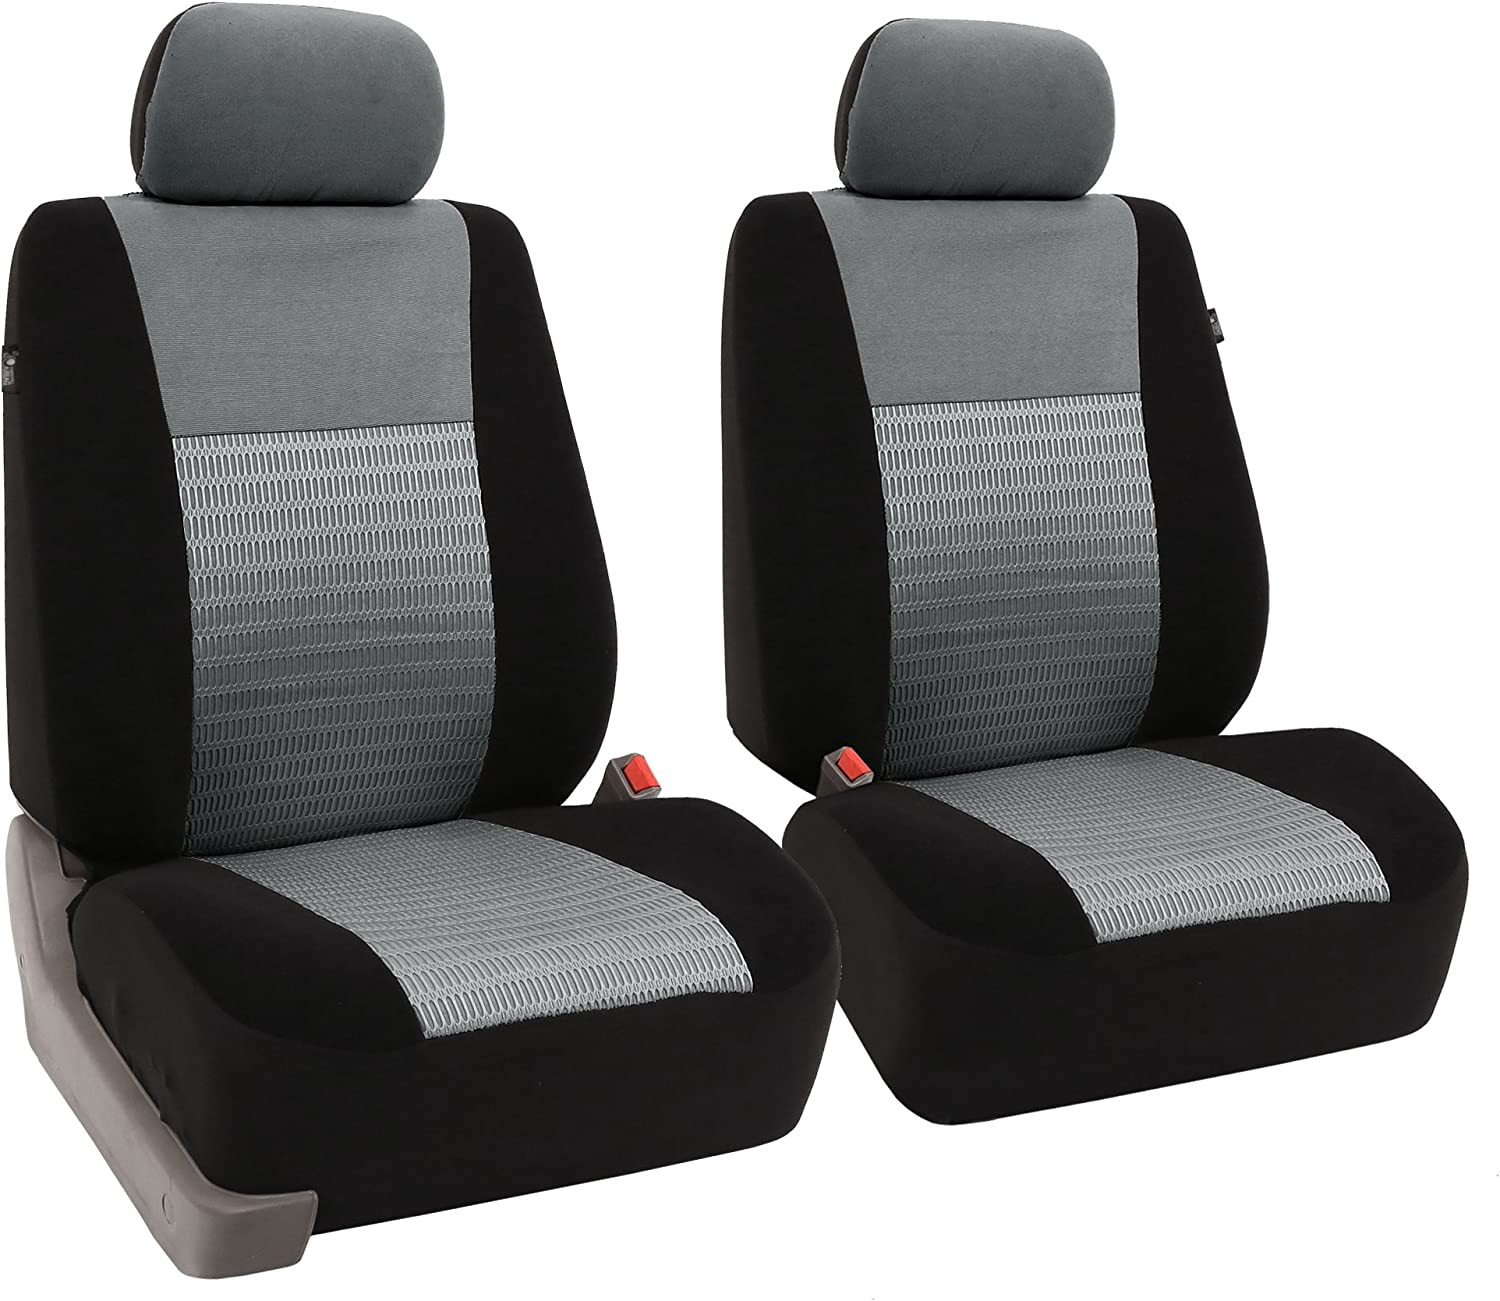 Amazon Com Fh Group Fb060gray102 Gray Deluxe 3d Air Mesh Front Seat Cover Set Of 2 Airbag Compatible Automotive